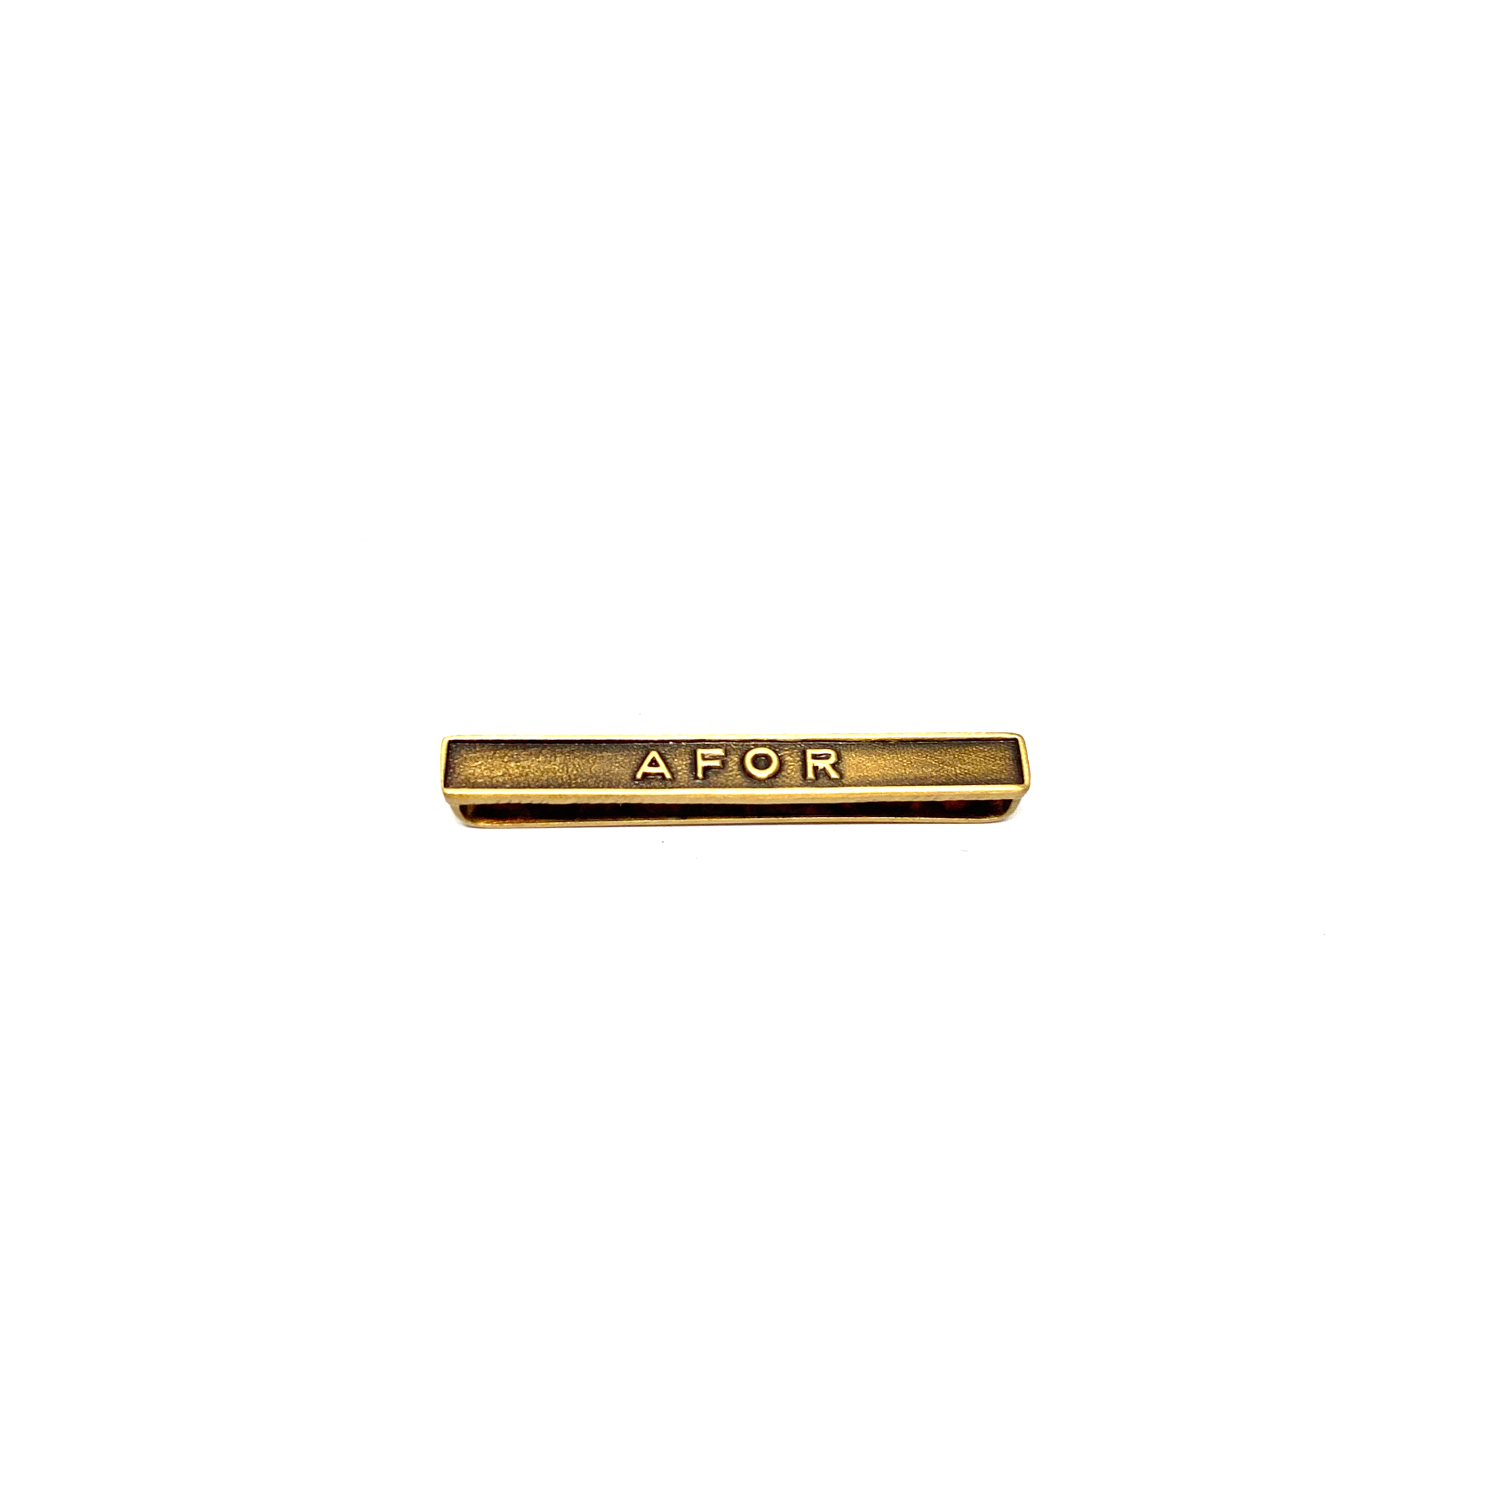 Bar Afor for military medals